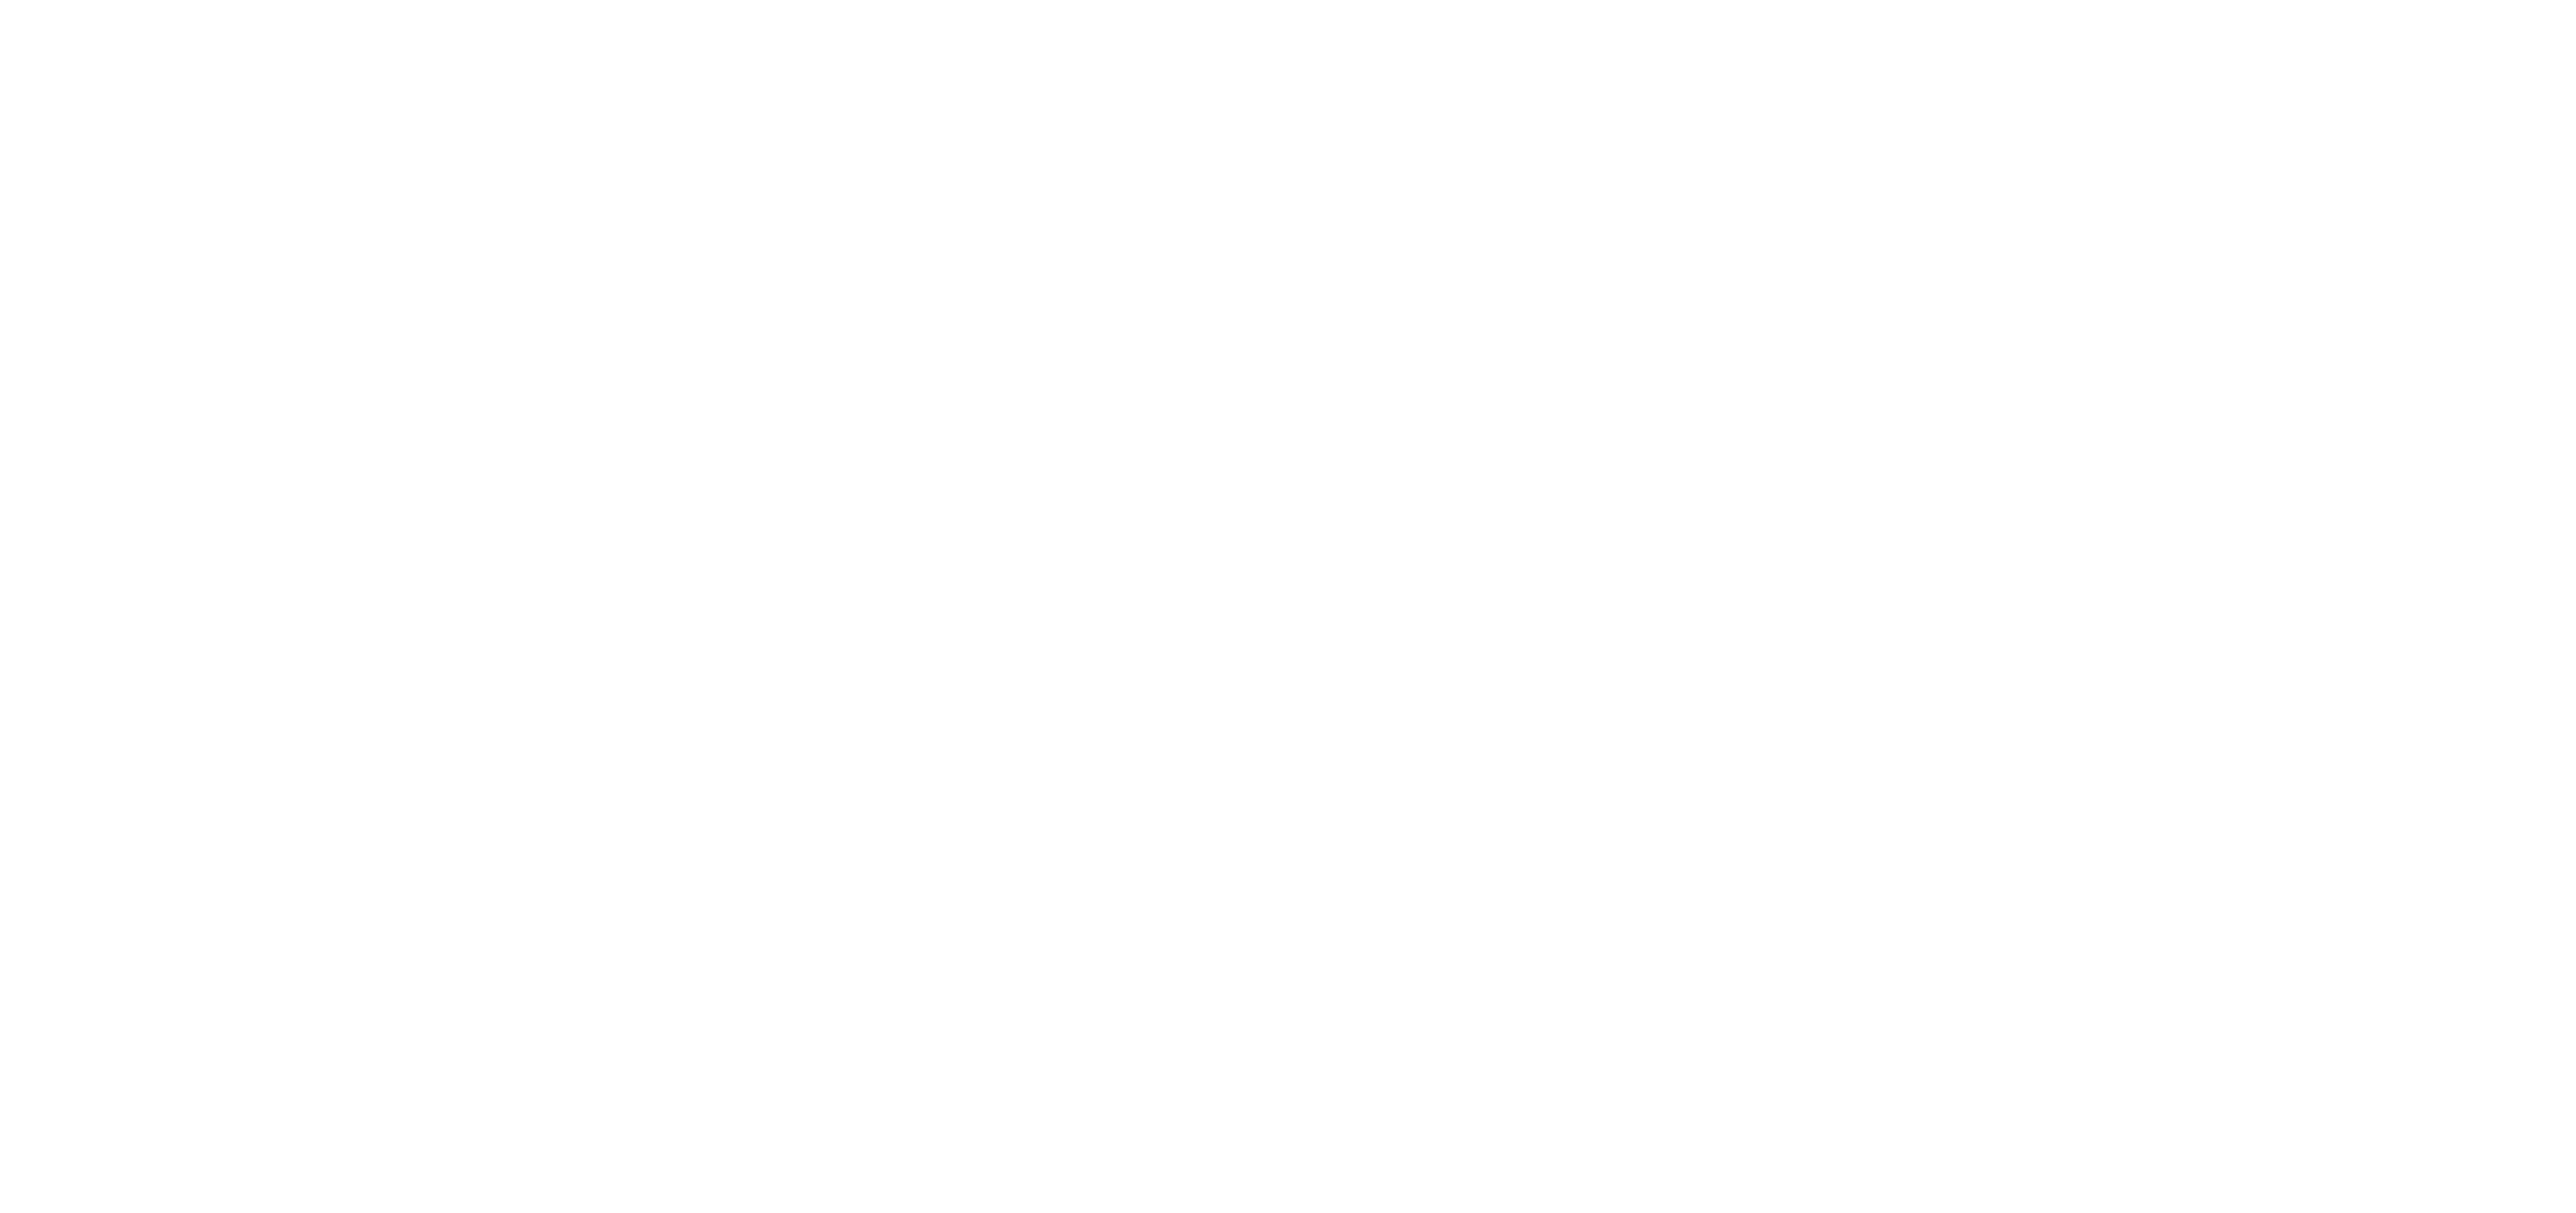 Frank and Frankies